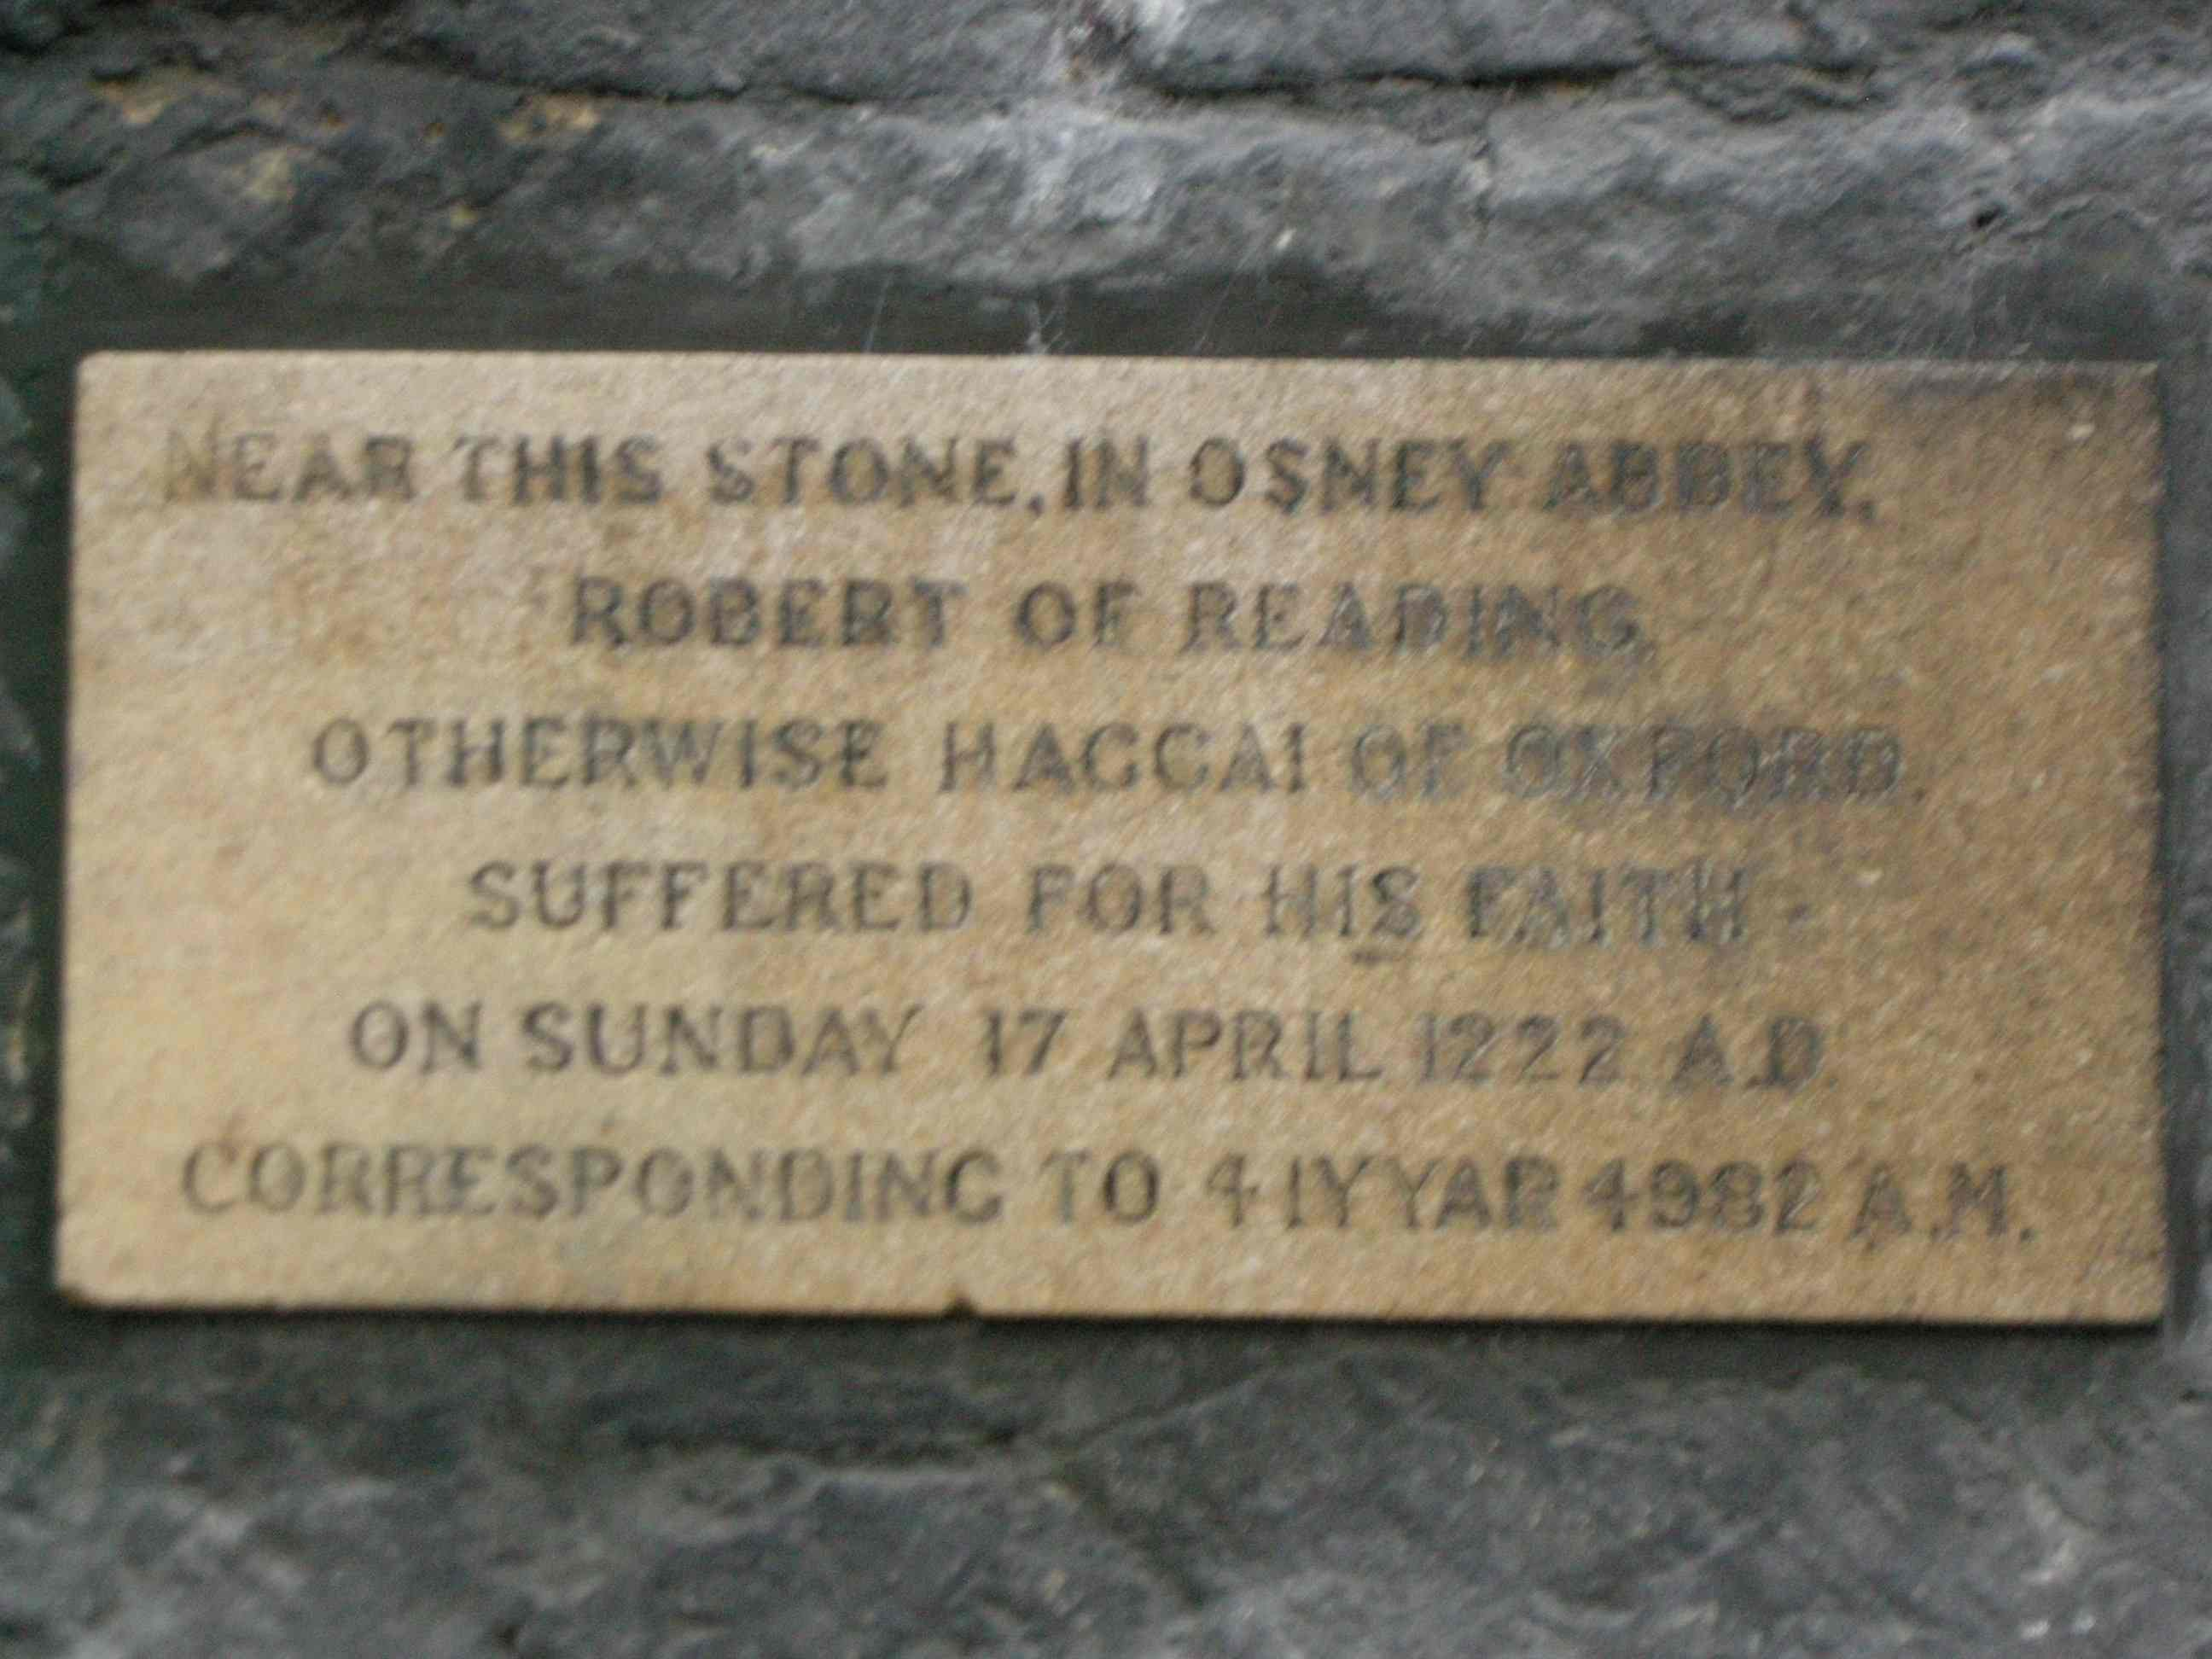 osney_plaque_2